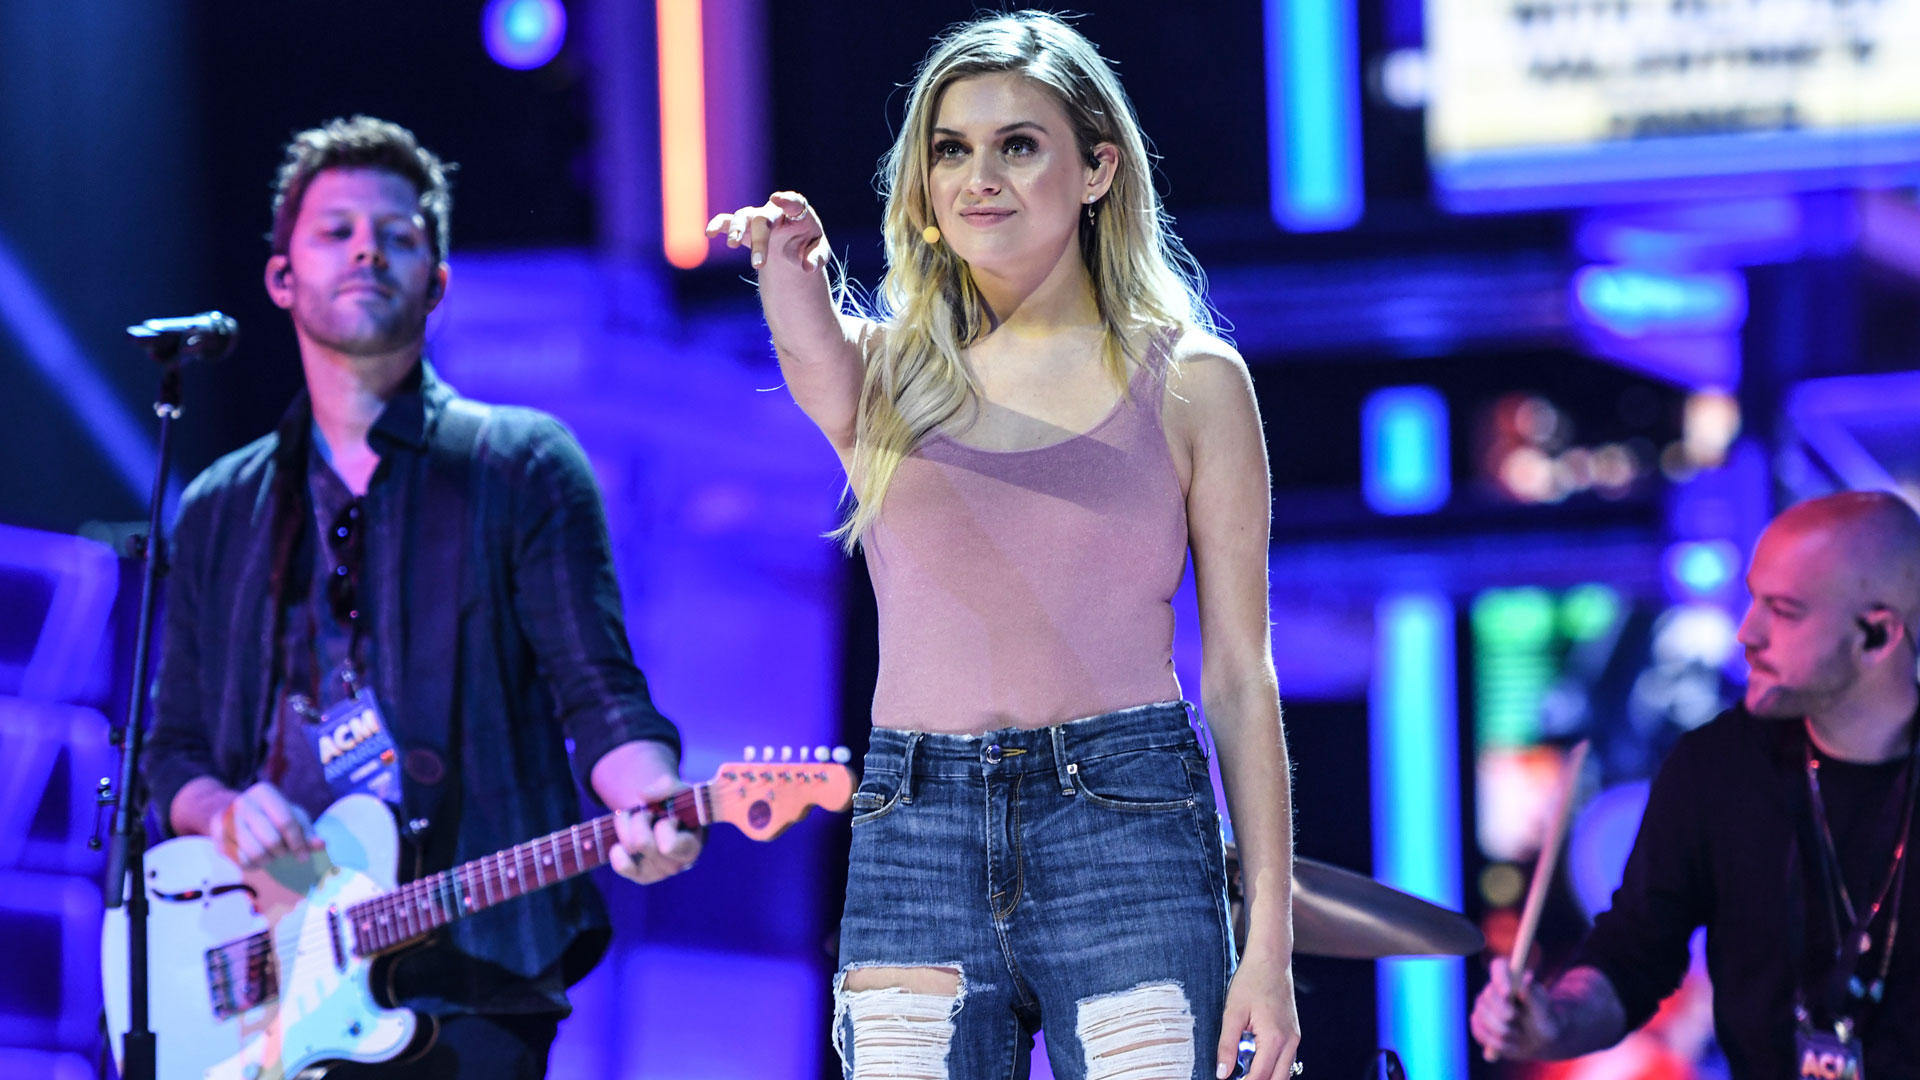 Kelsea Ballerini is graceful like a ballerina while rehearsing for her upcoming ACM performance.